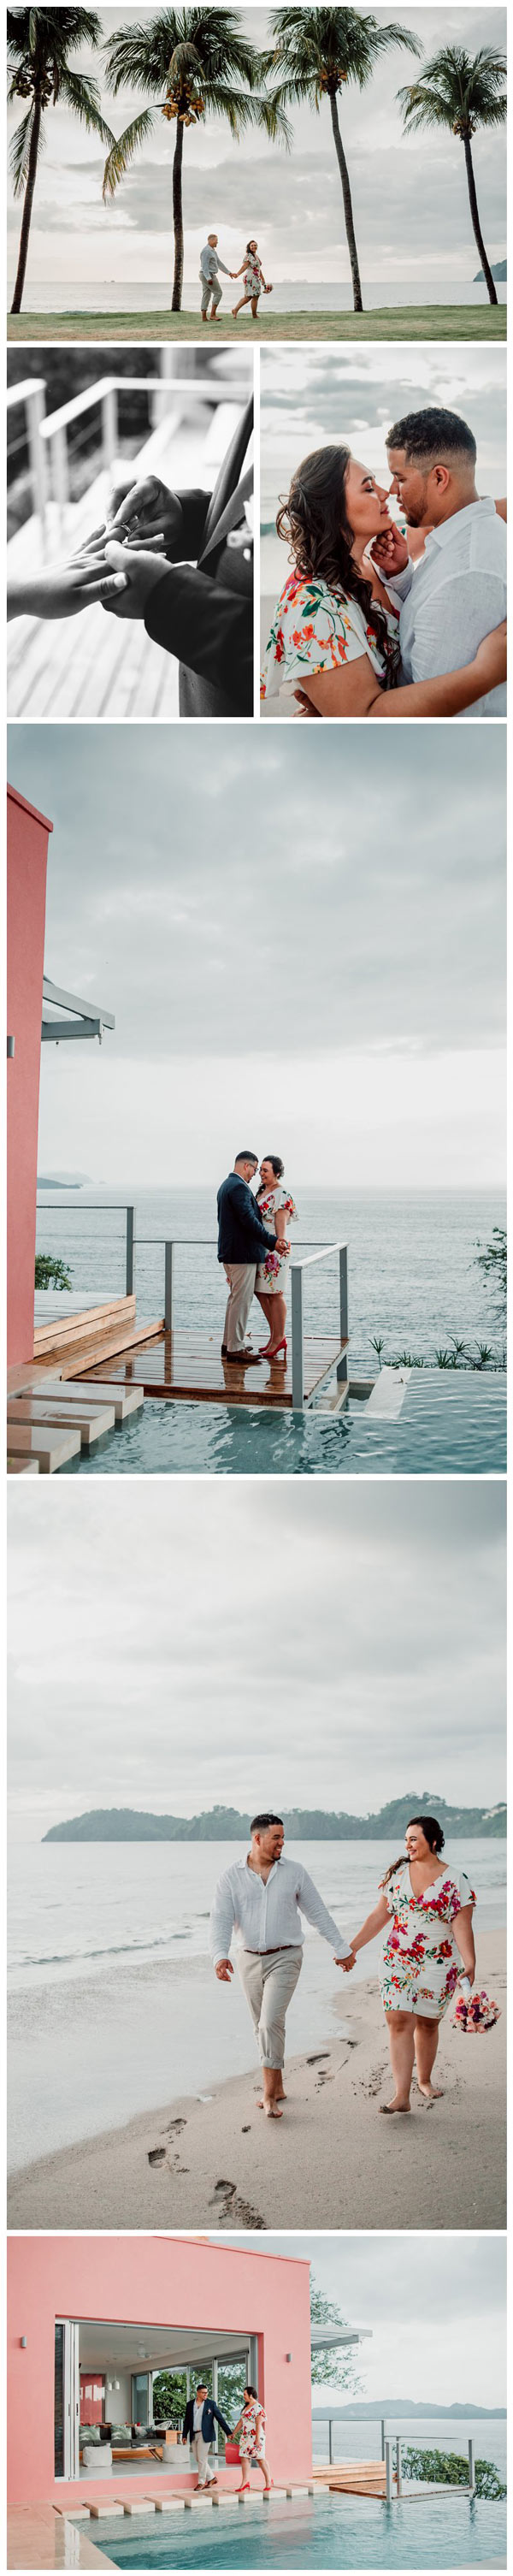 Costa Rica elopement by Playa Flamingo Costa Rica photographer Kristen M. Brown, Samba to the Sea Photography.